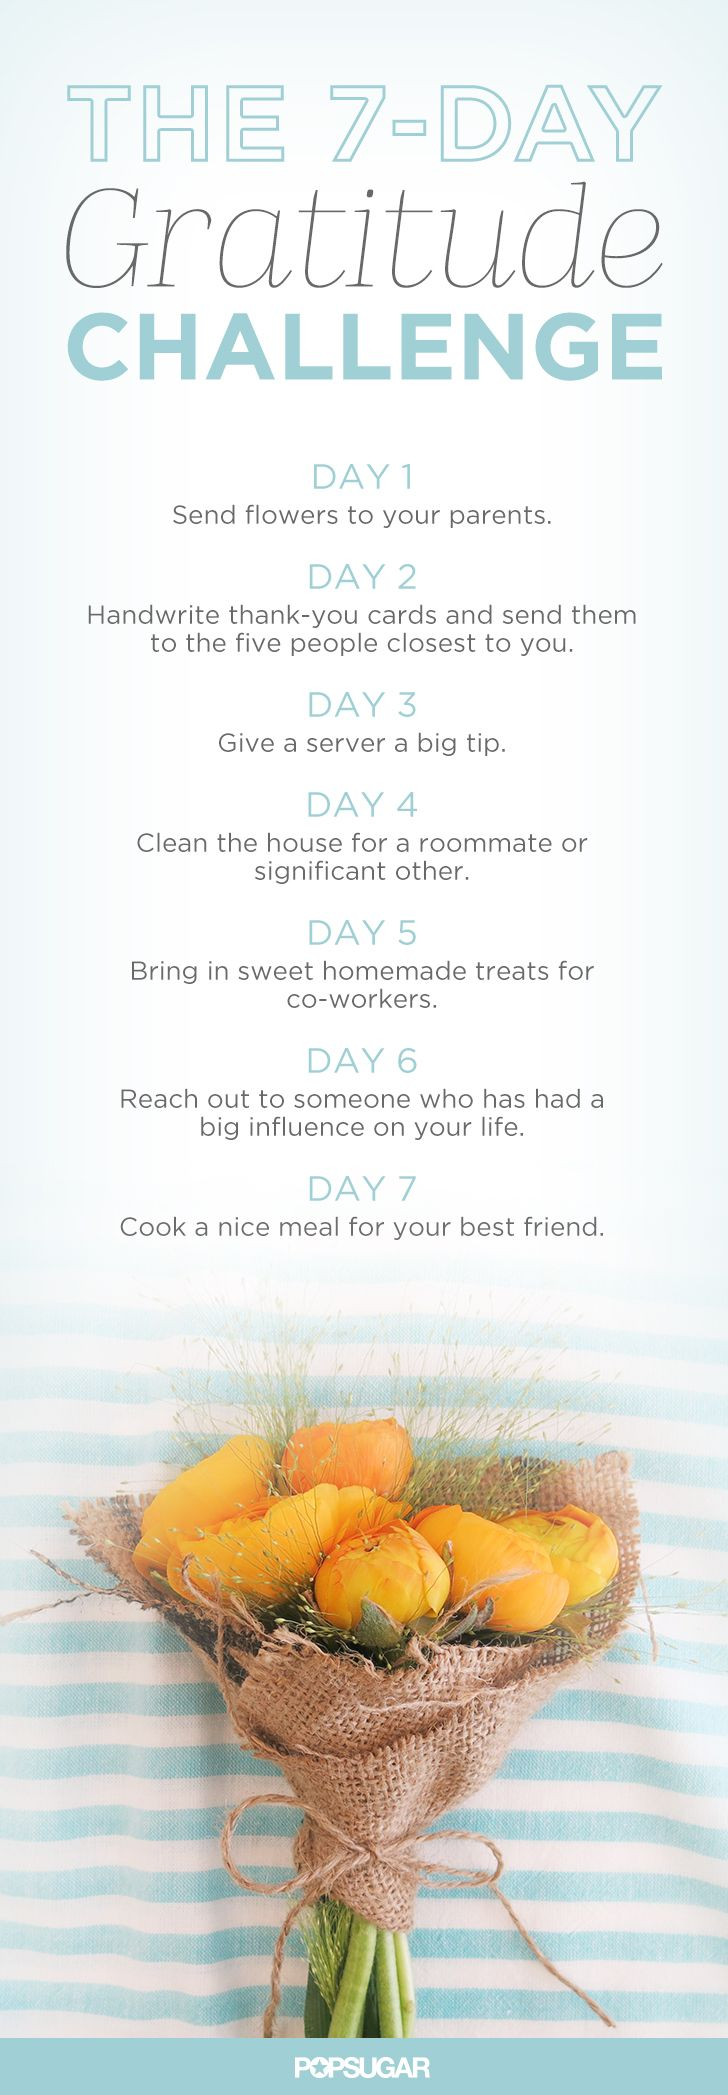 We've created a challenge designed to help you show your gratitude to the ones who have positively impacted your life.